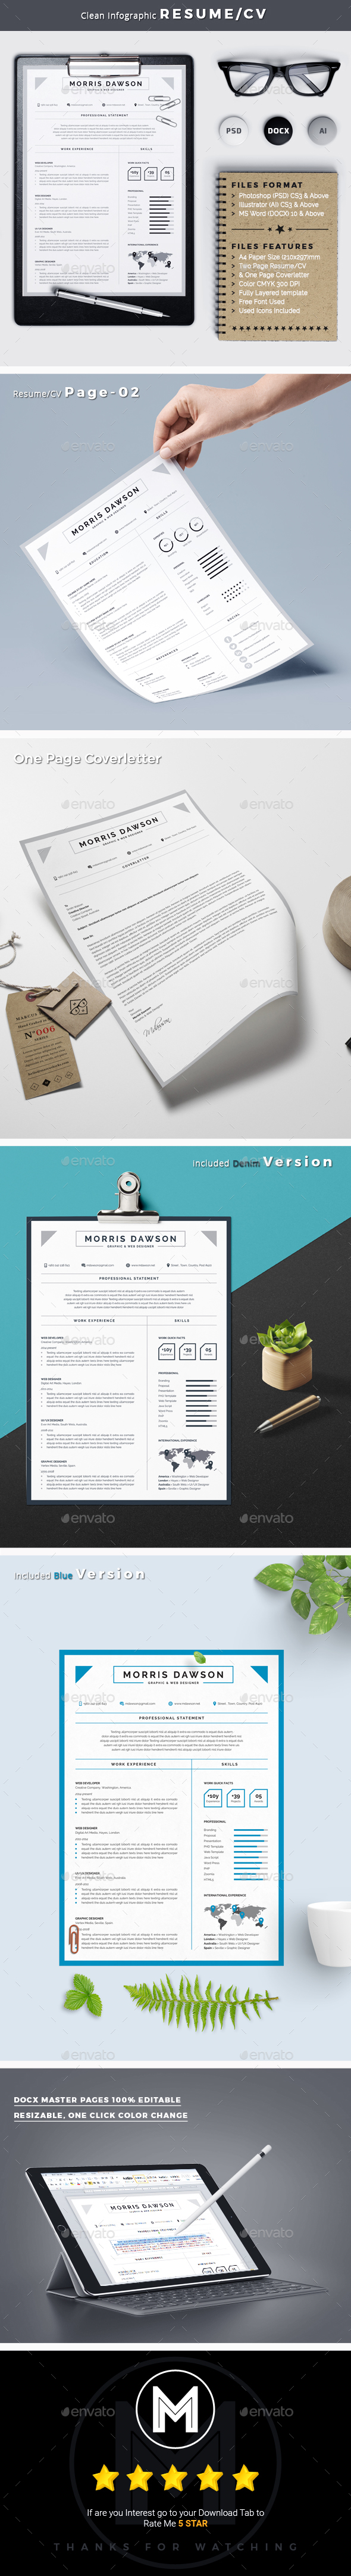 Clean Infographic Resume/CV